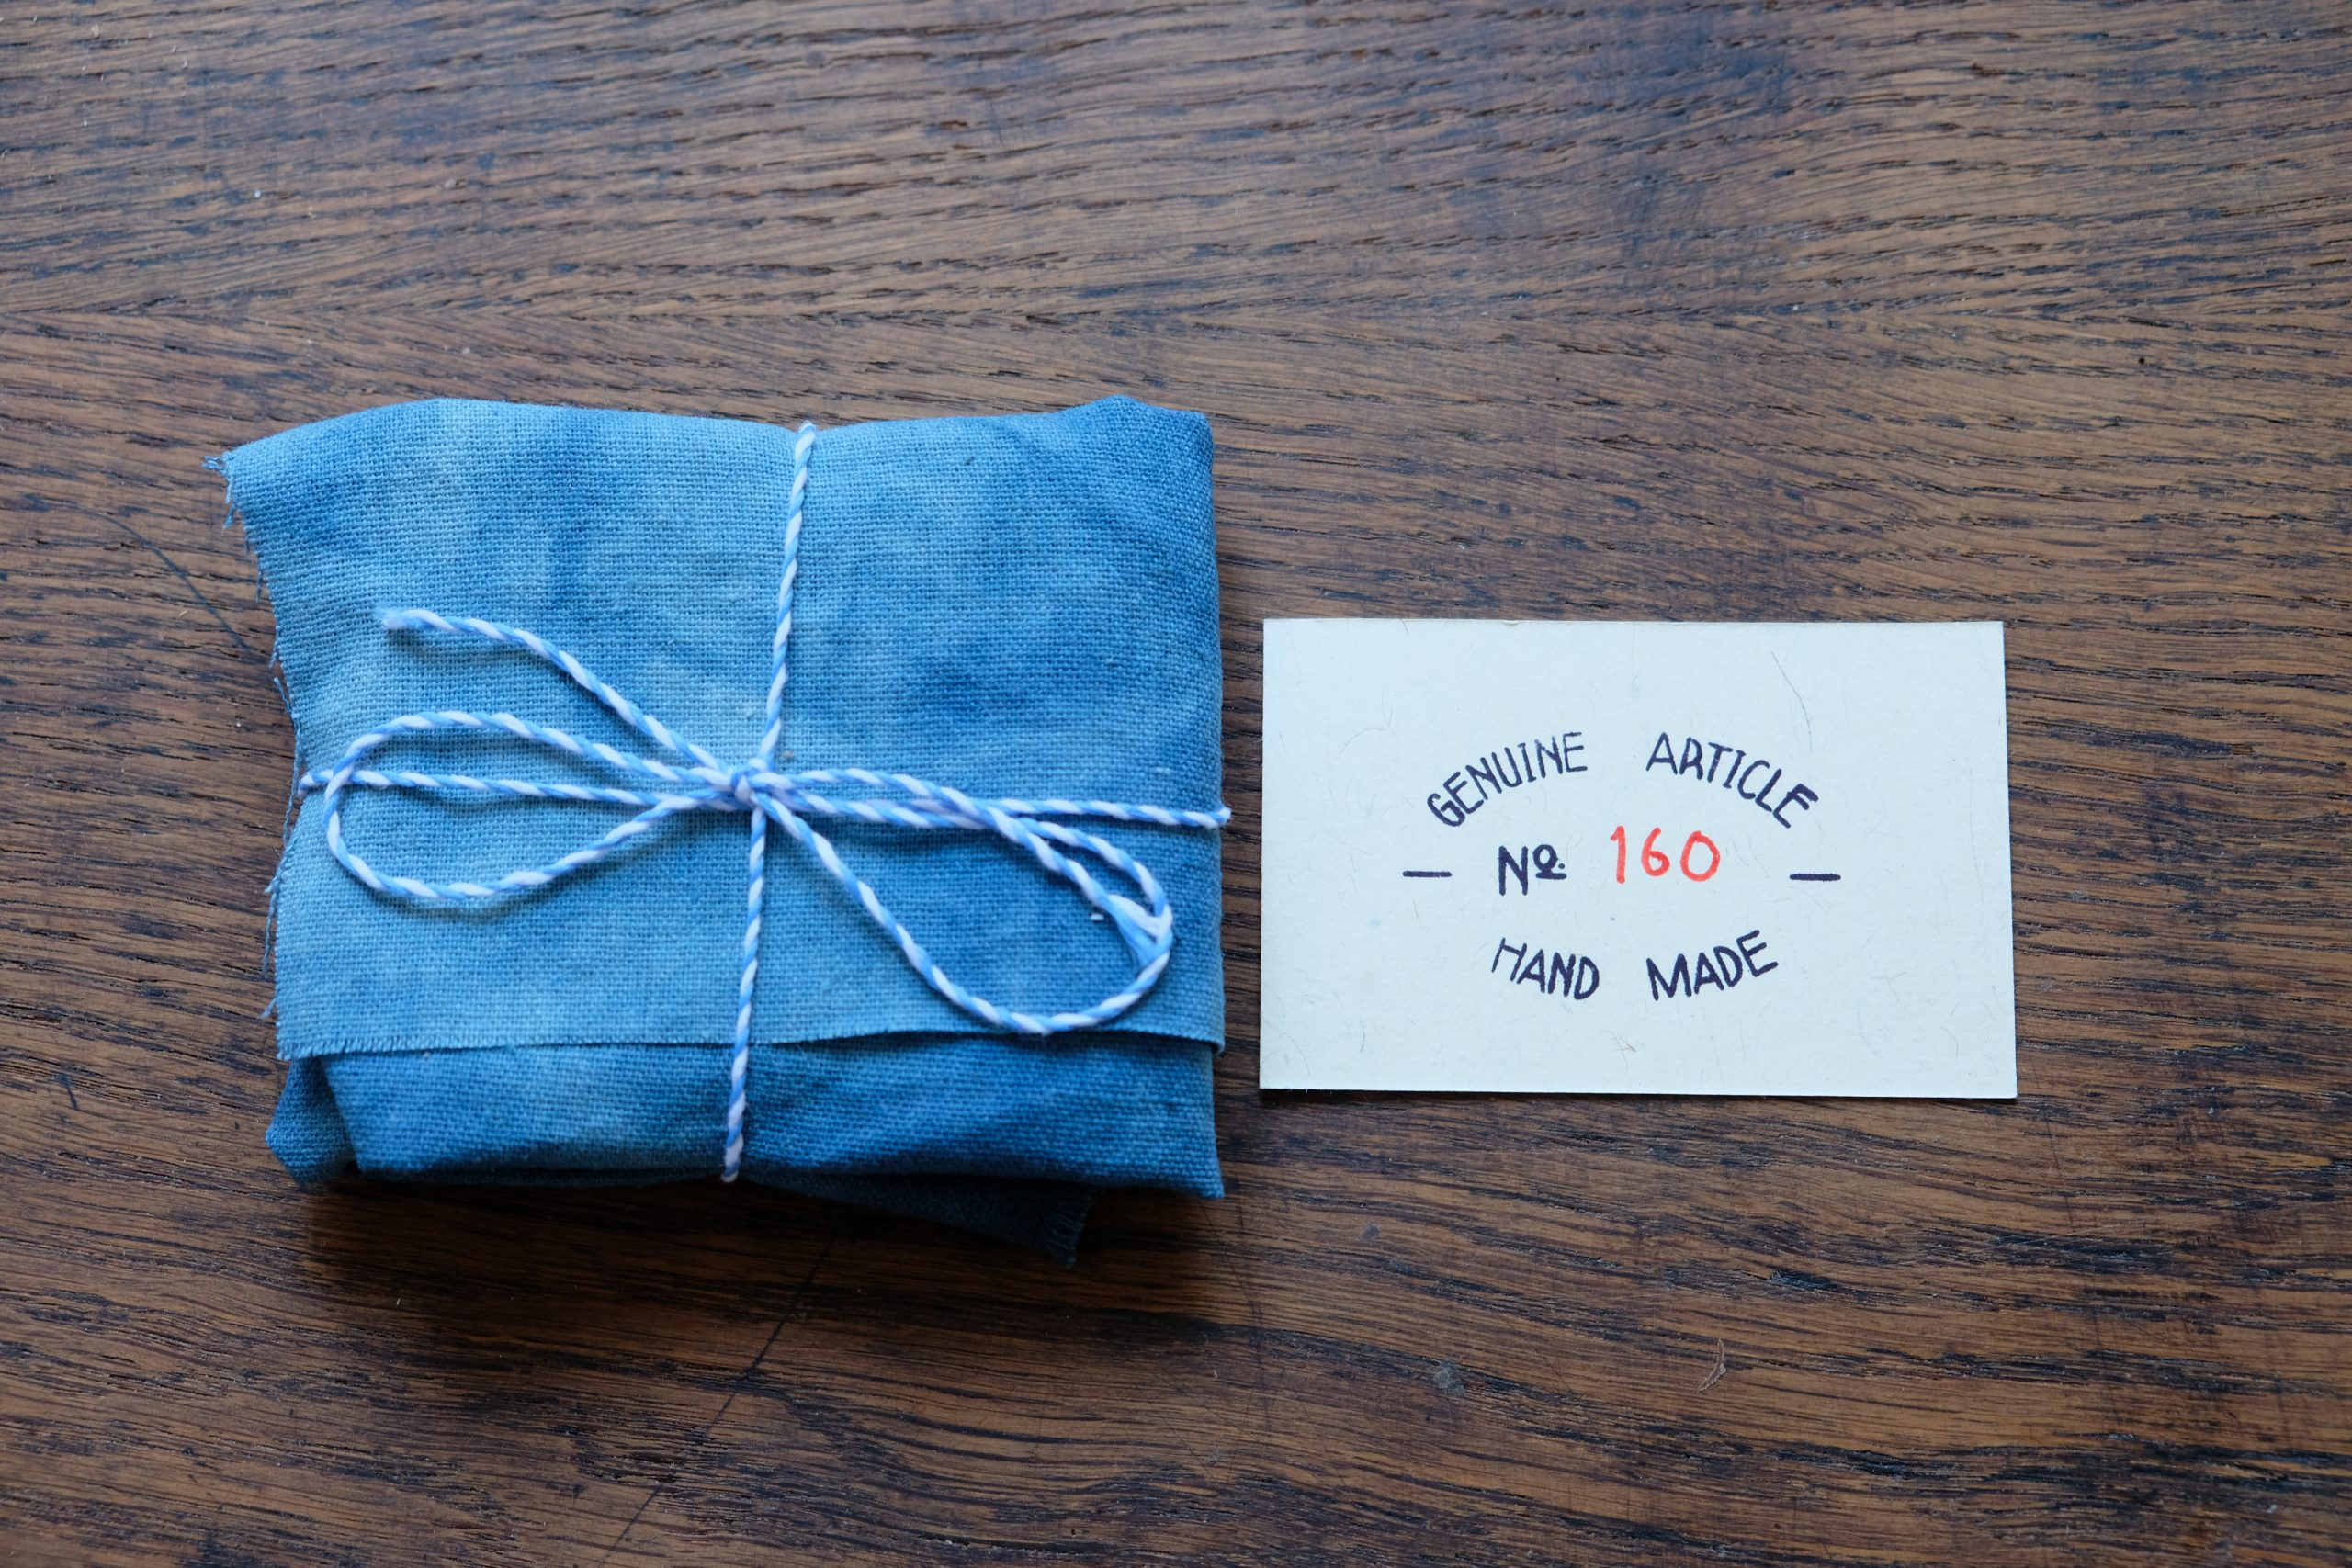 Lerif Designs leather goods wrapped in indigo cloth with card 'genuine article No. 160 Hand Made'